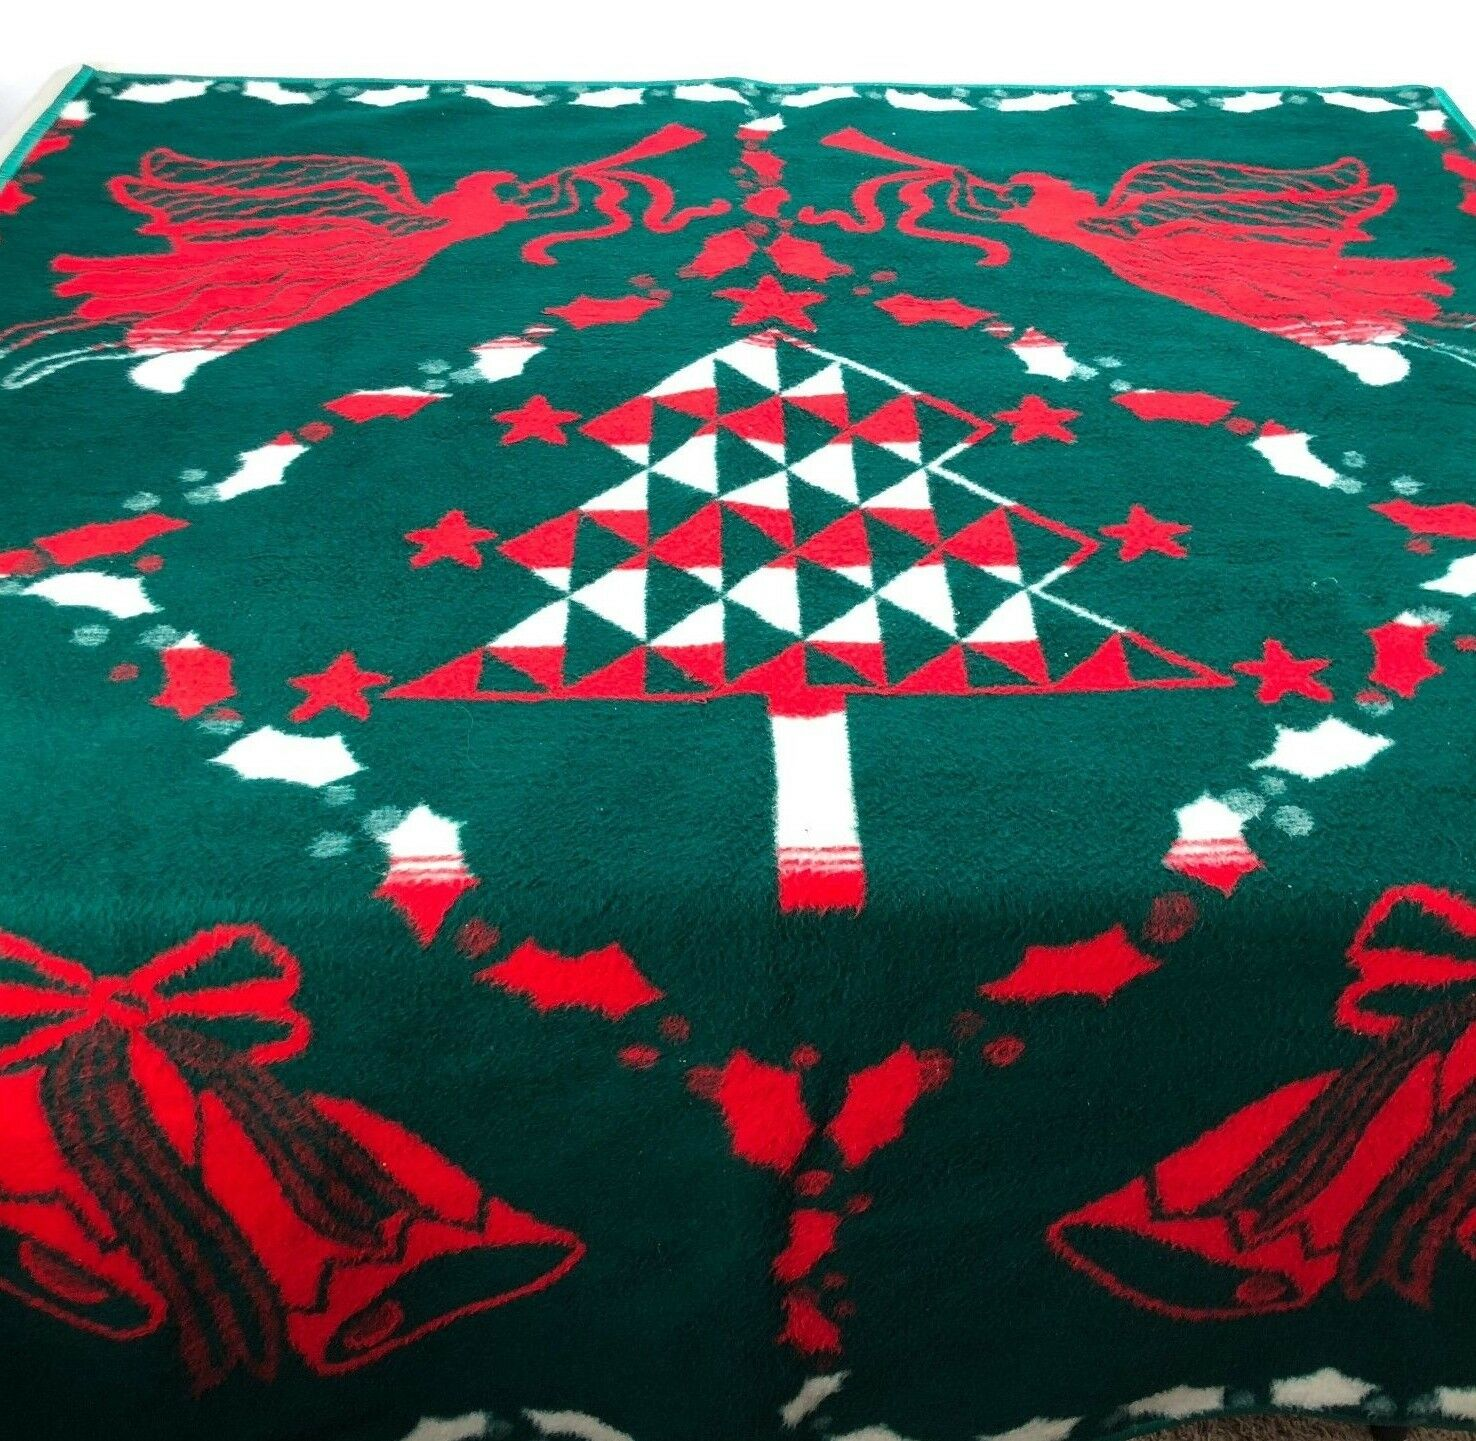 Vtg Christmas Throw Blanket Acrylic Tree Angel Bells Holiday Grün rot 72  x 56